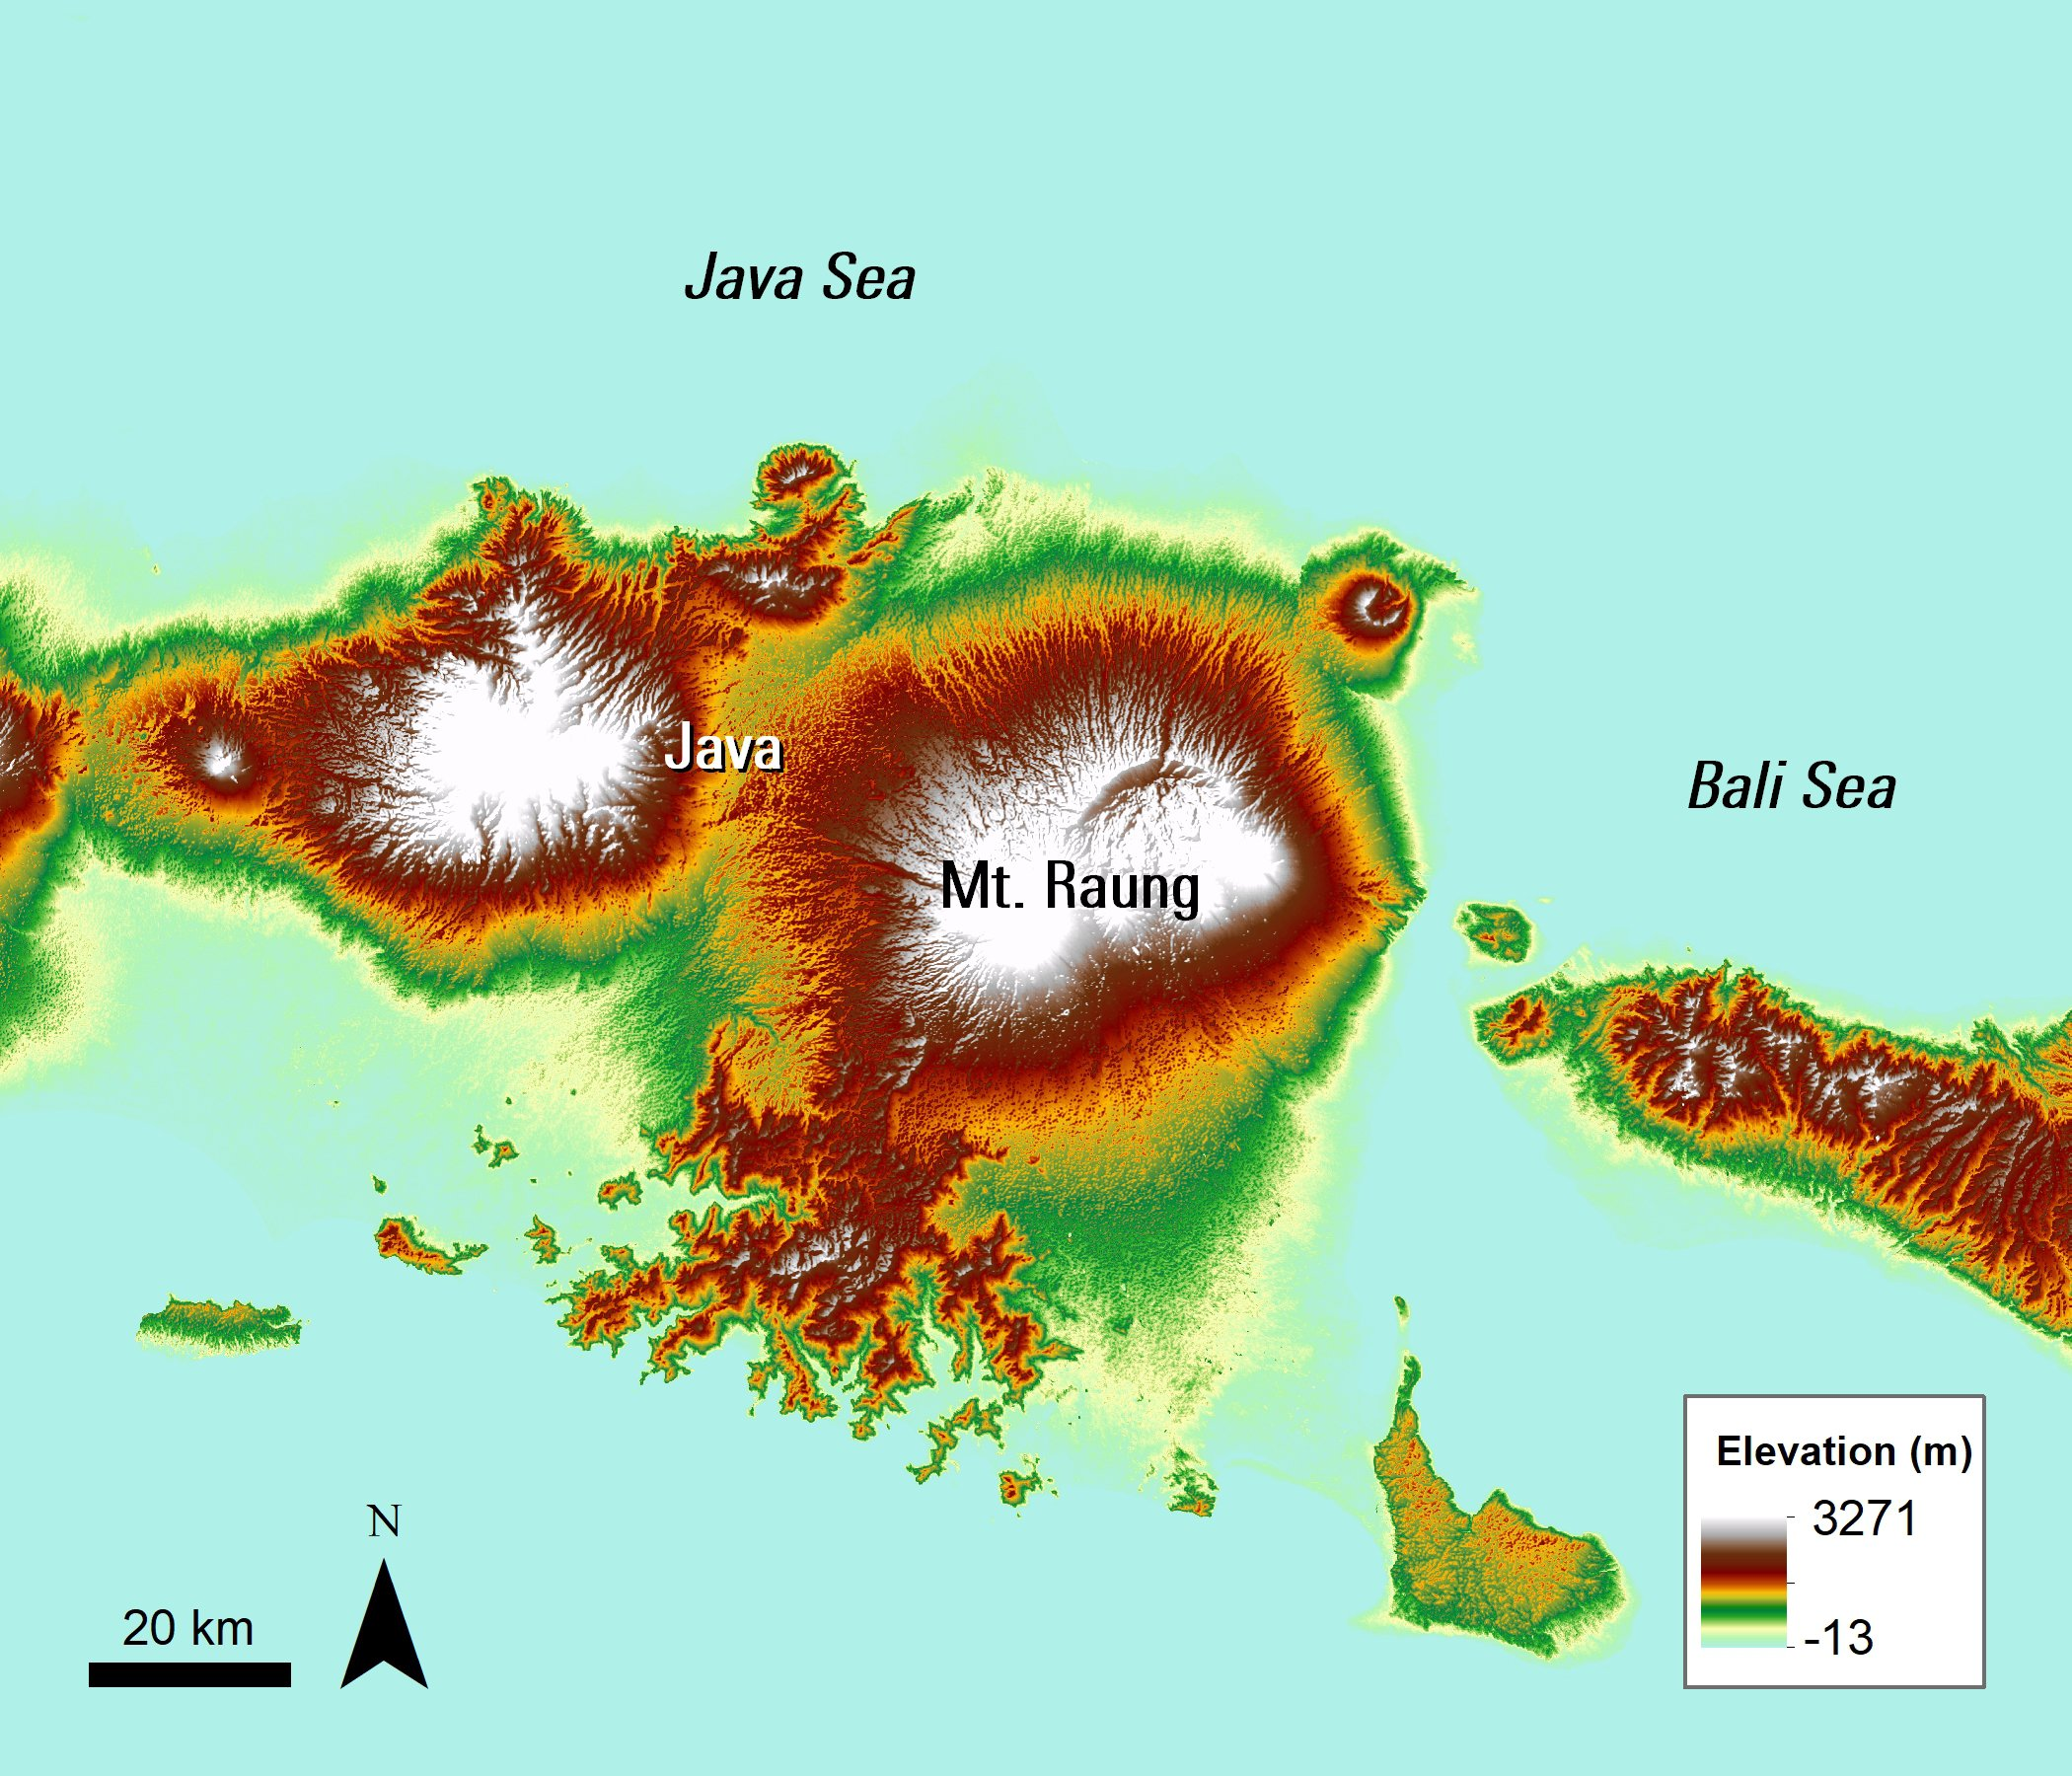 An ASTER Elevation image over Mt. Raung, Java, Indonesia.